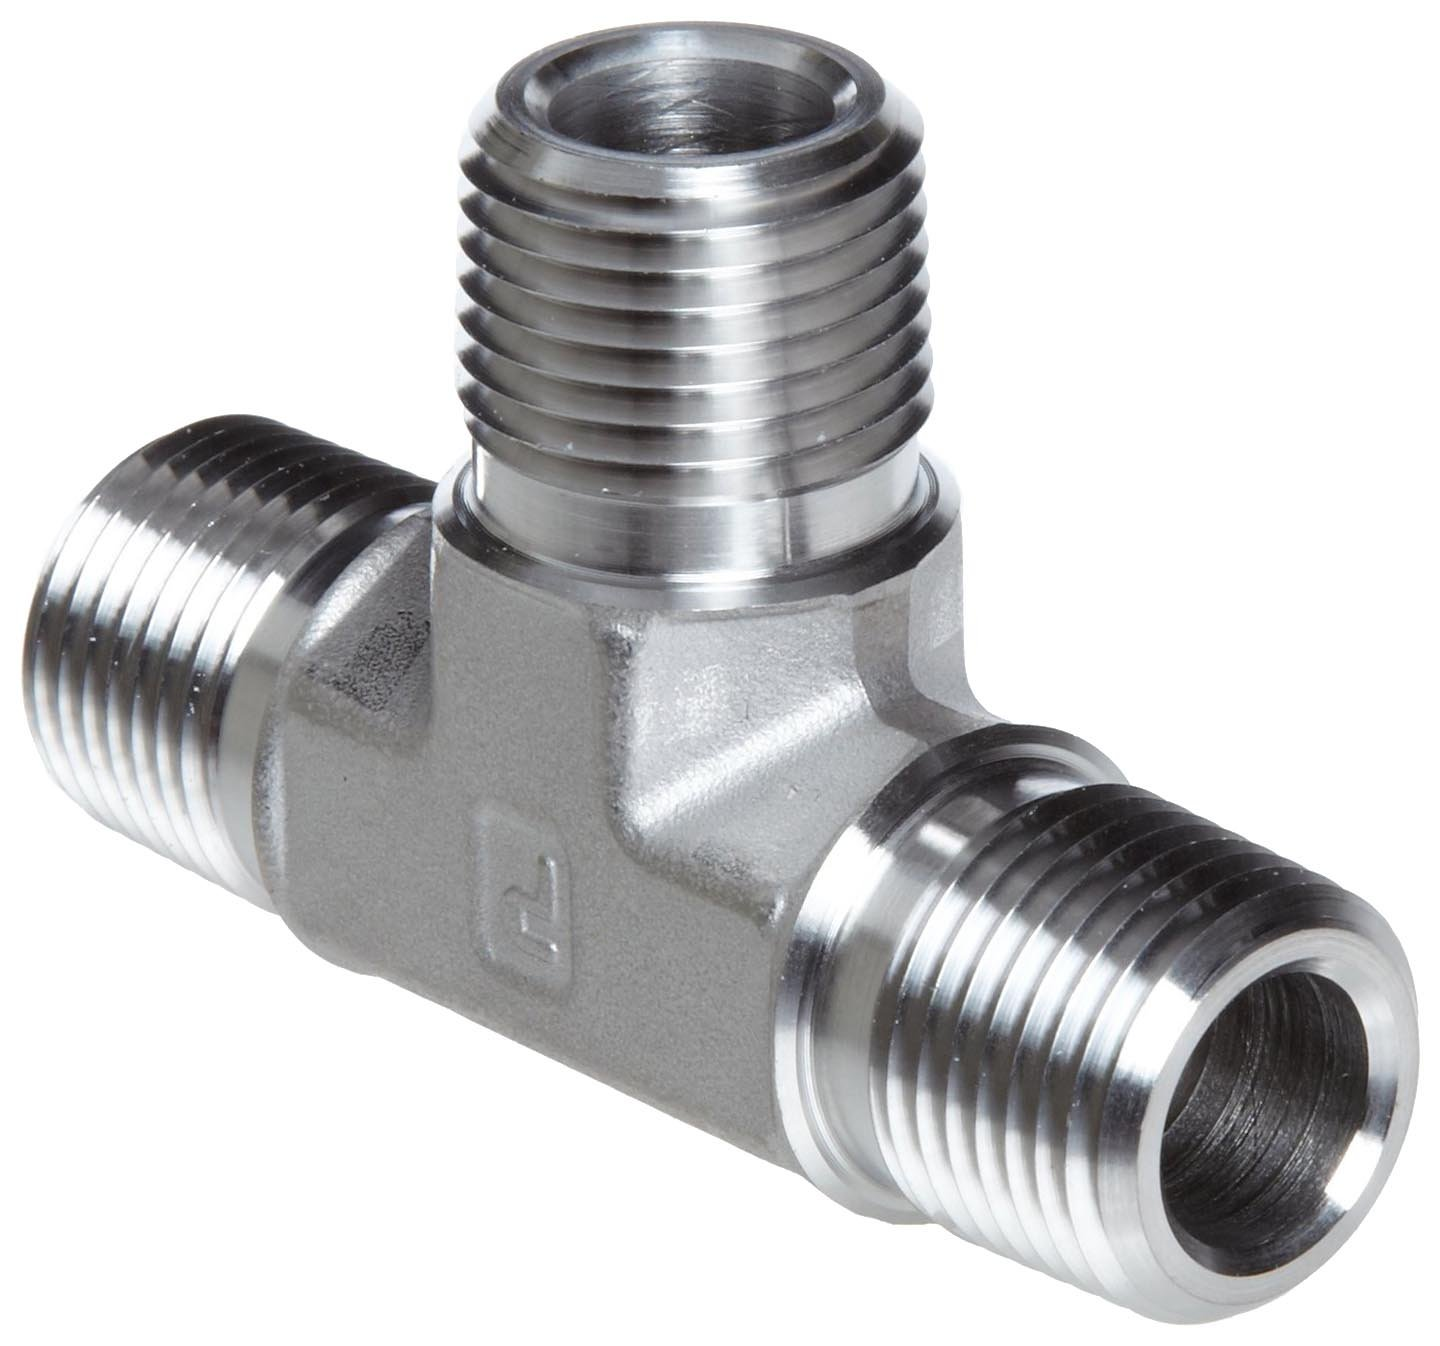 3//8 NPT Male Tee Parker 6-6-6 MT-SS Stainless Steel 316 Pipe Fitting